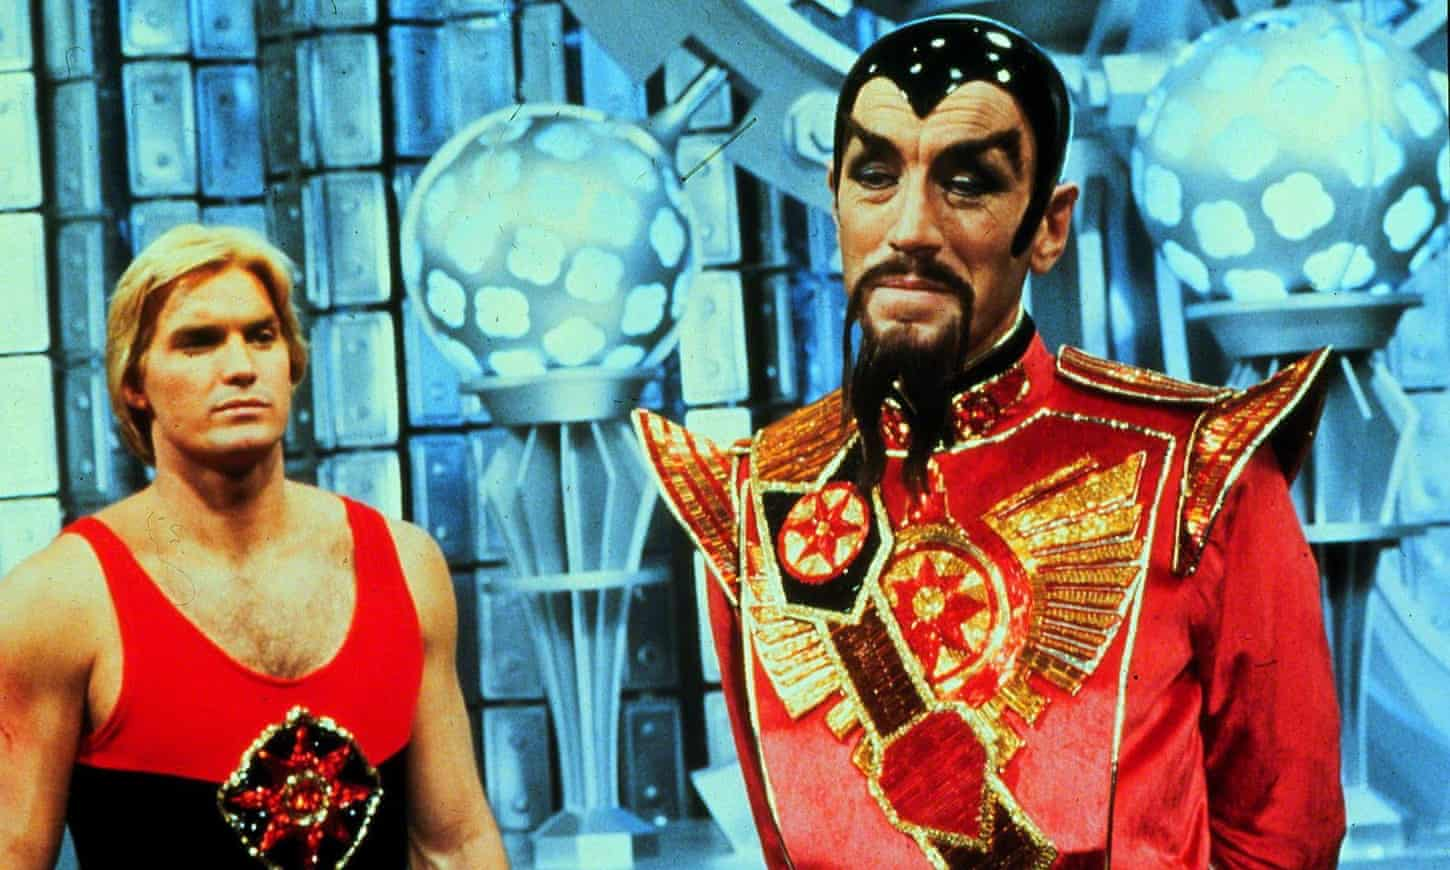 The problem with Flash Gordon is racism – and animation won't fix it